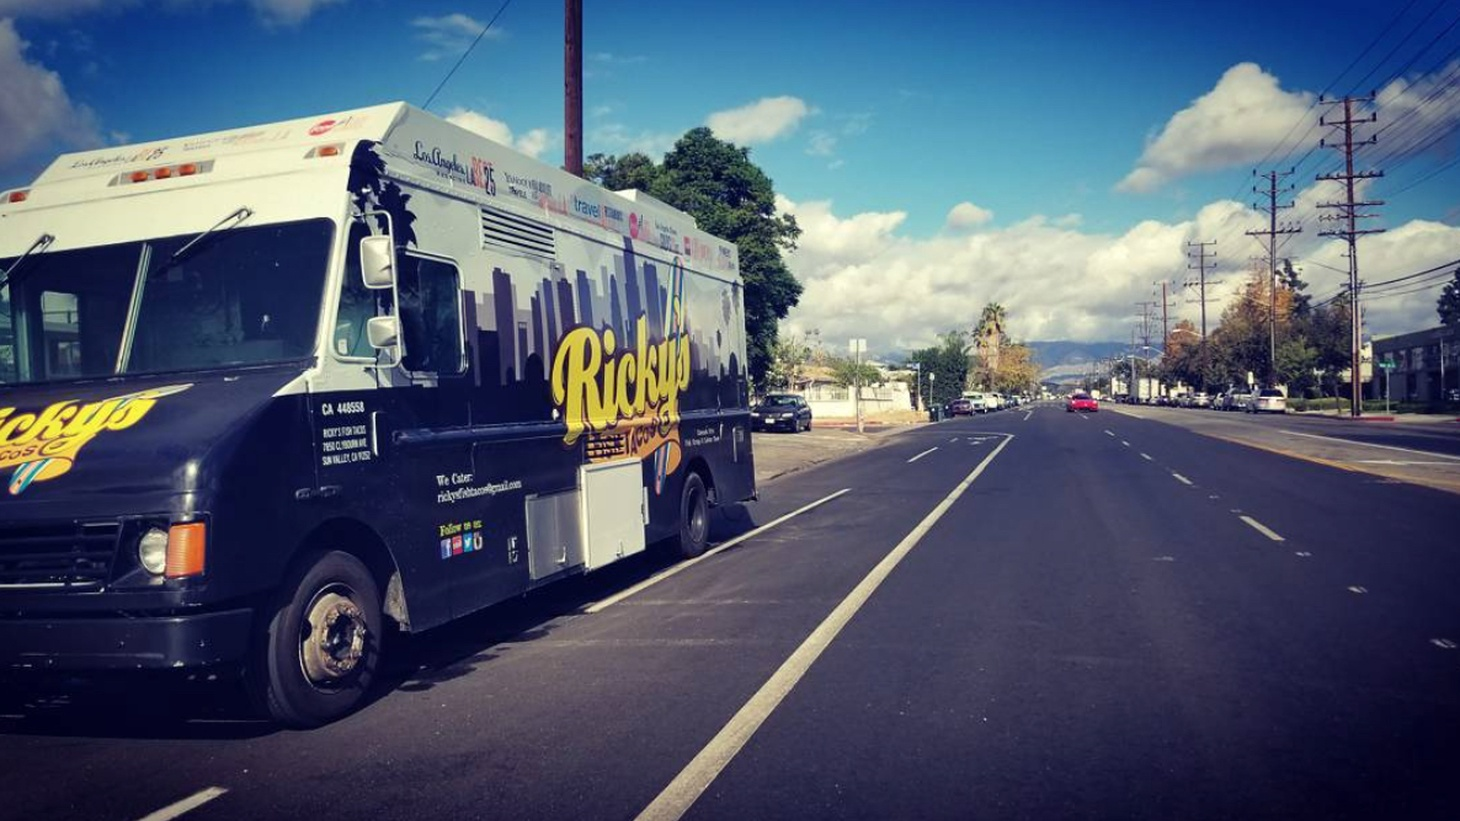 Ricardo Piña has been running his taco truck, Ricky's Fish Tacos, for more than a decade. Now he's decided to sell his business and retire, but he's taking his time to find the right buyer.